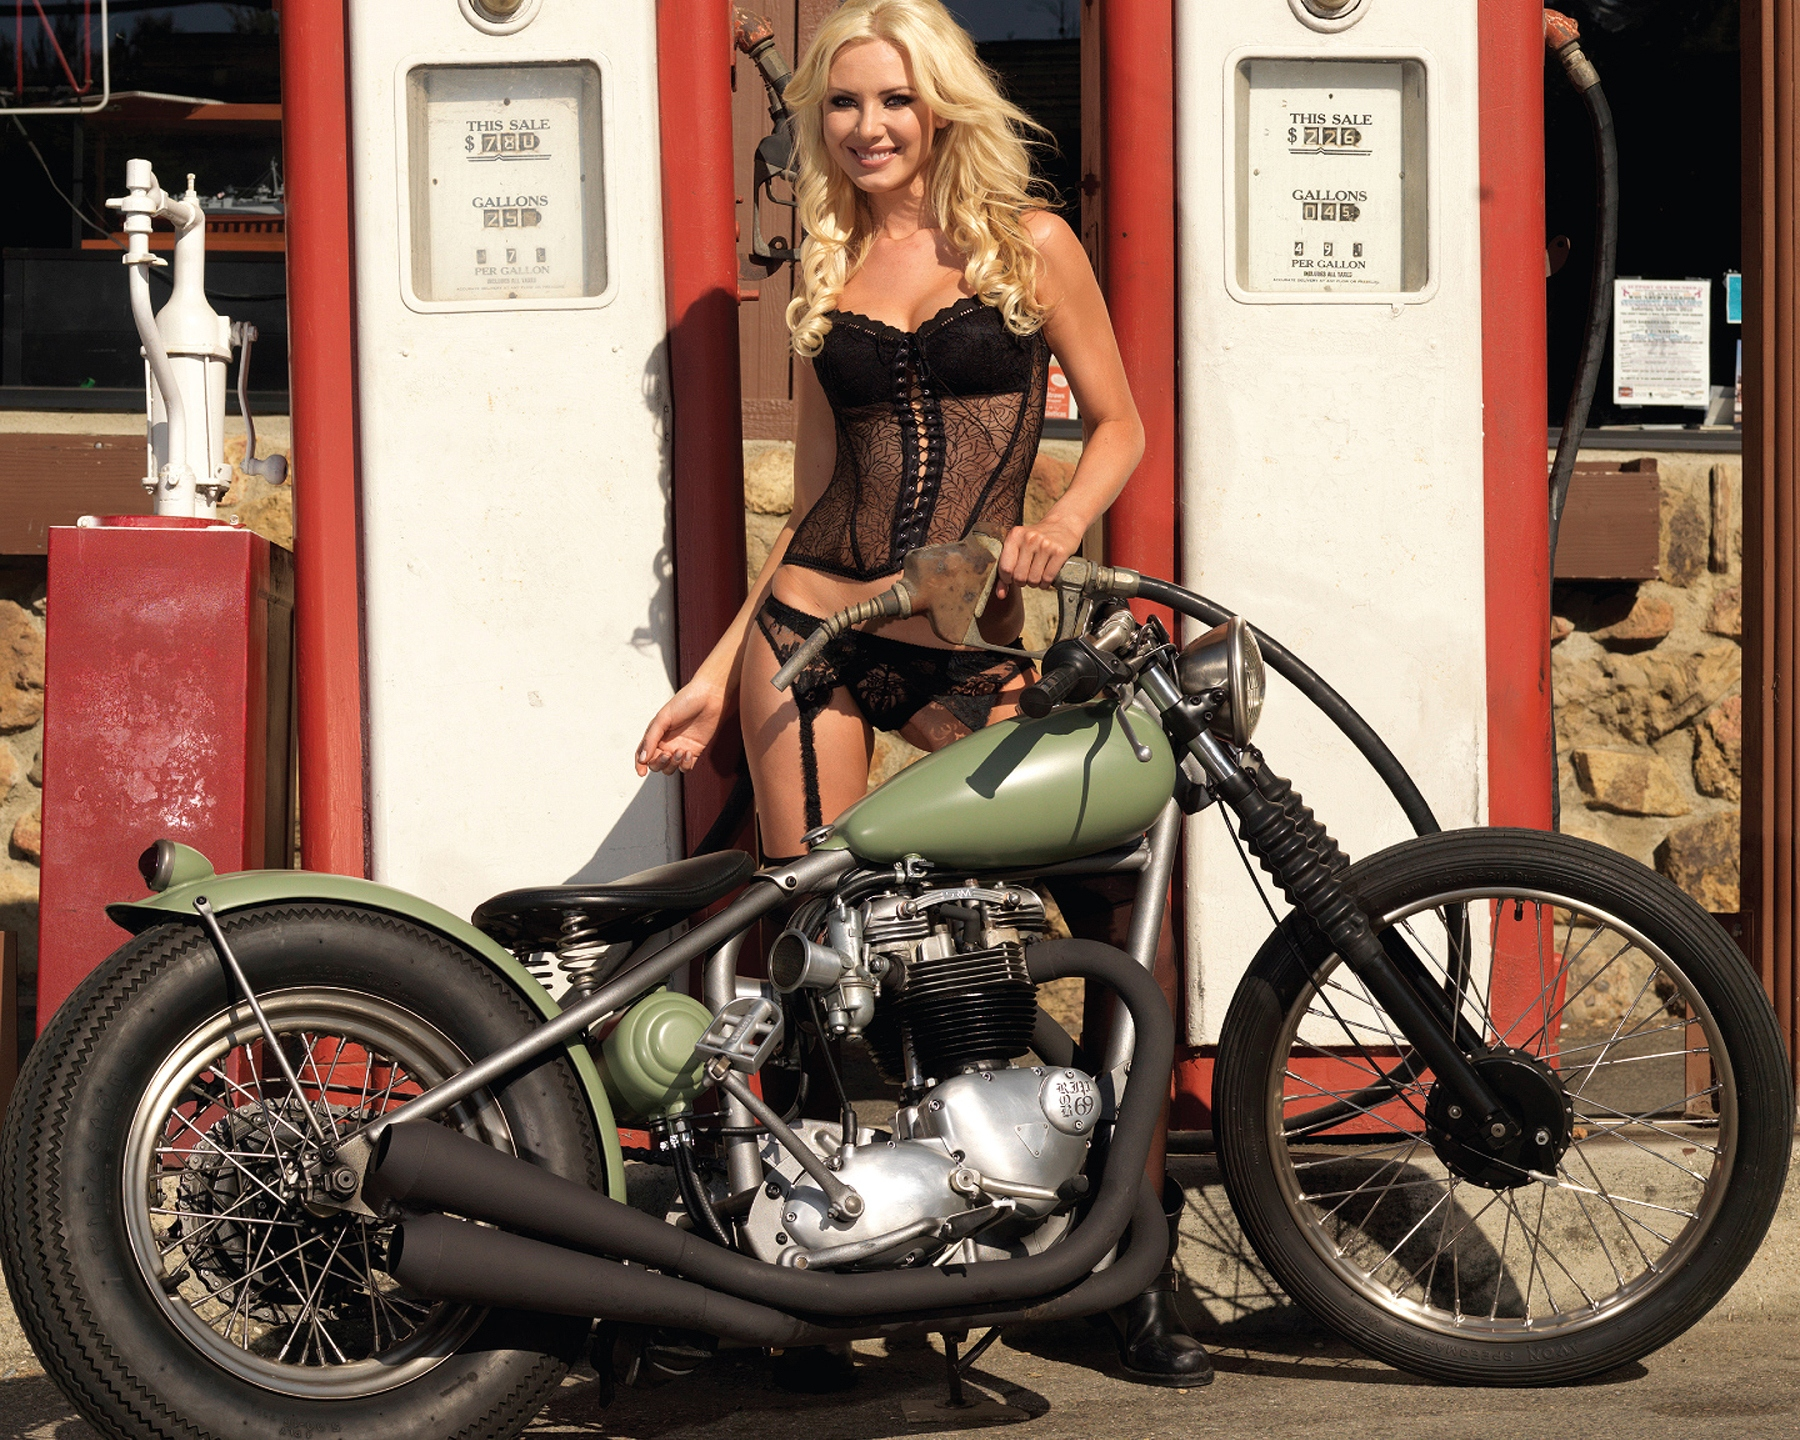 girls_and_motorcycles_wallpaper_background_44635.jpg.jpg